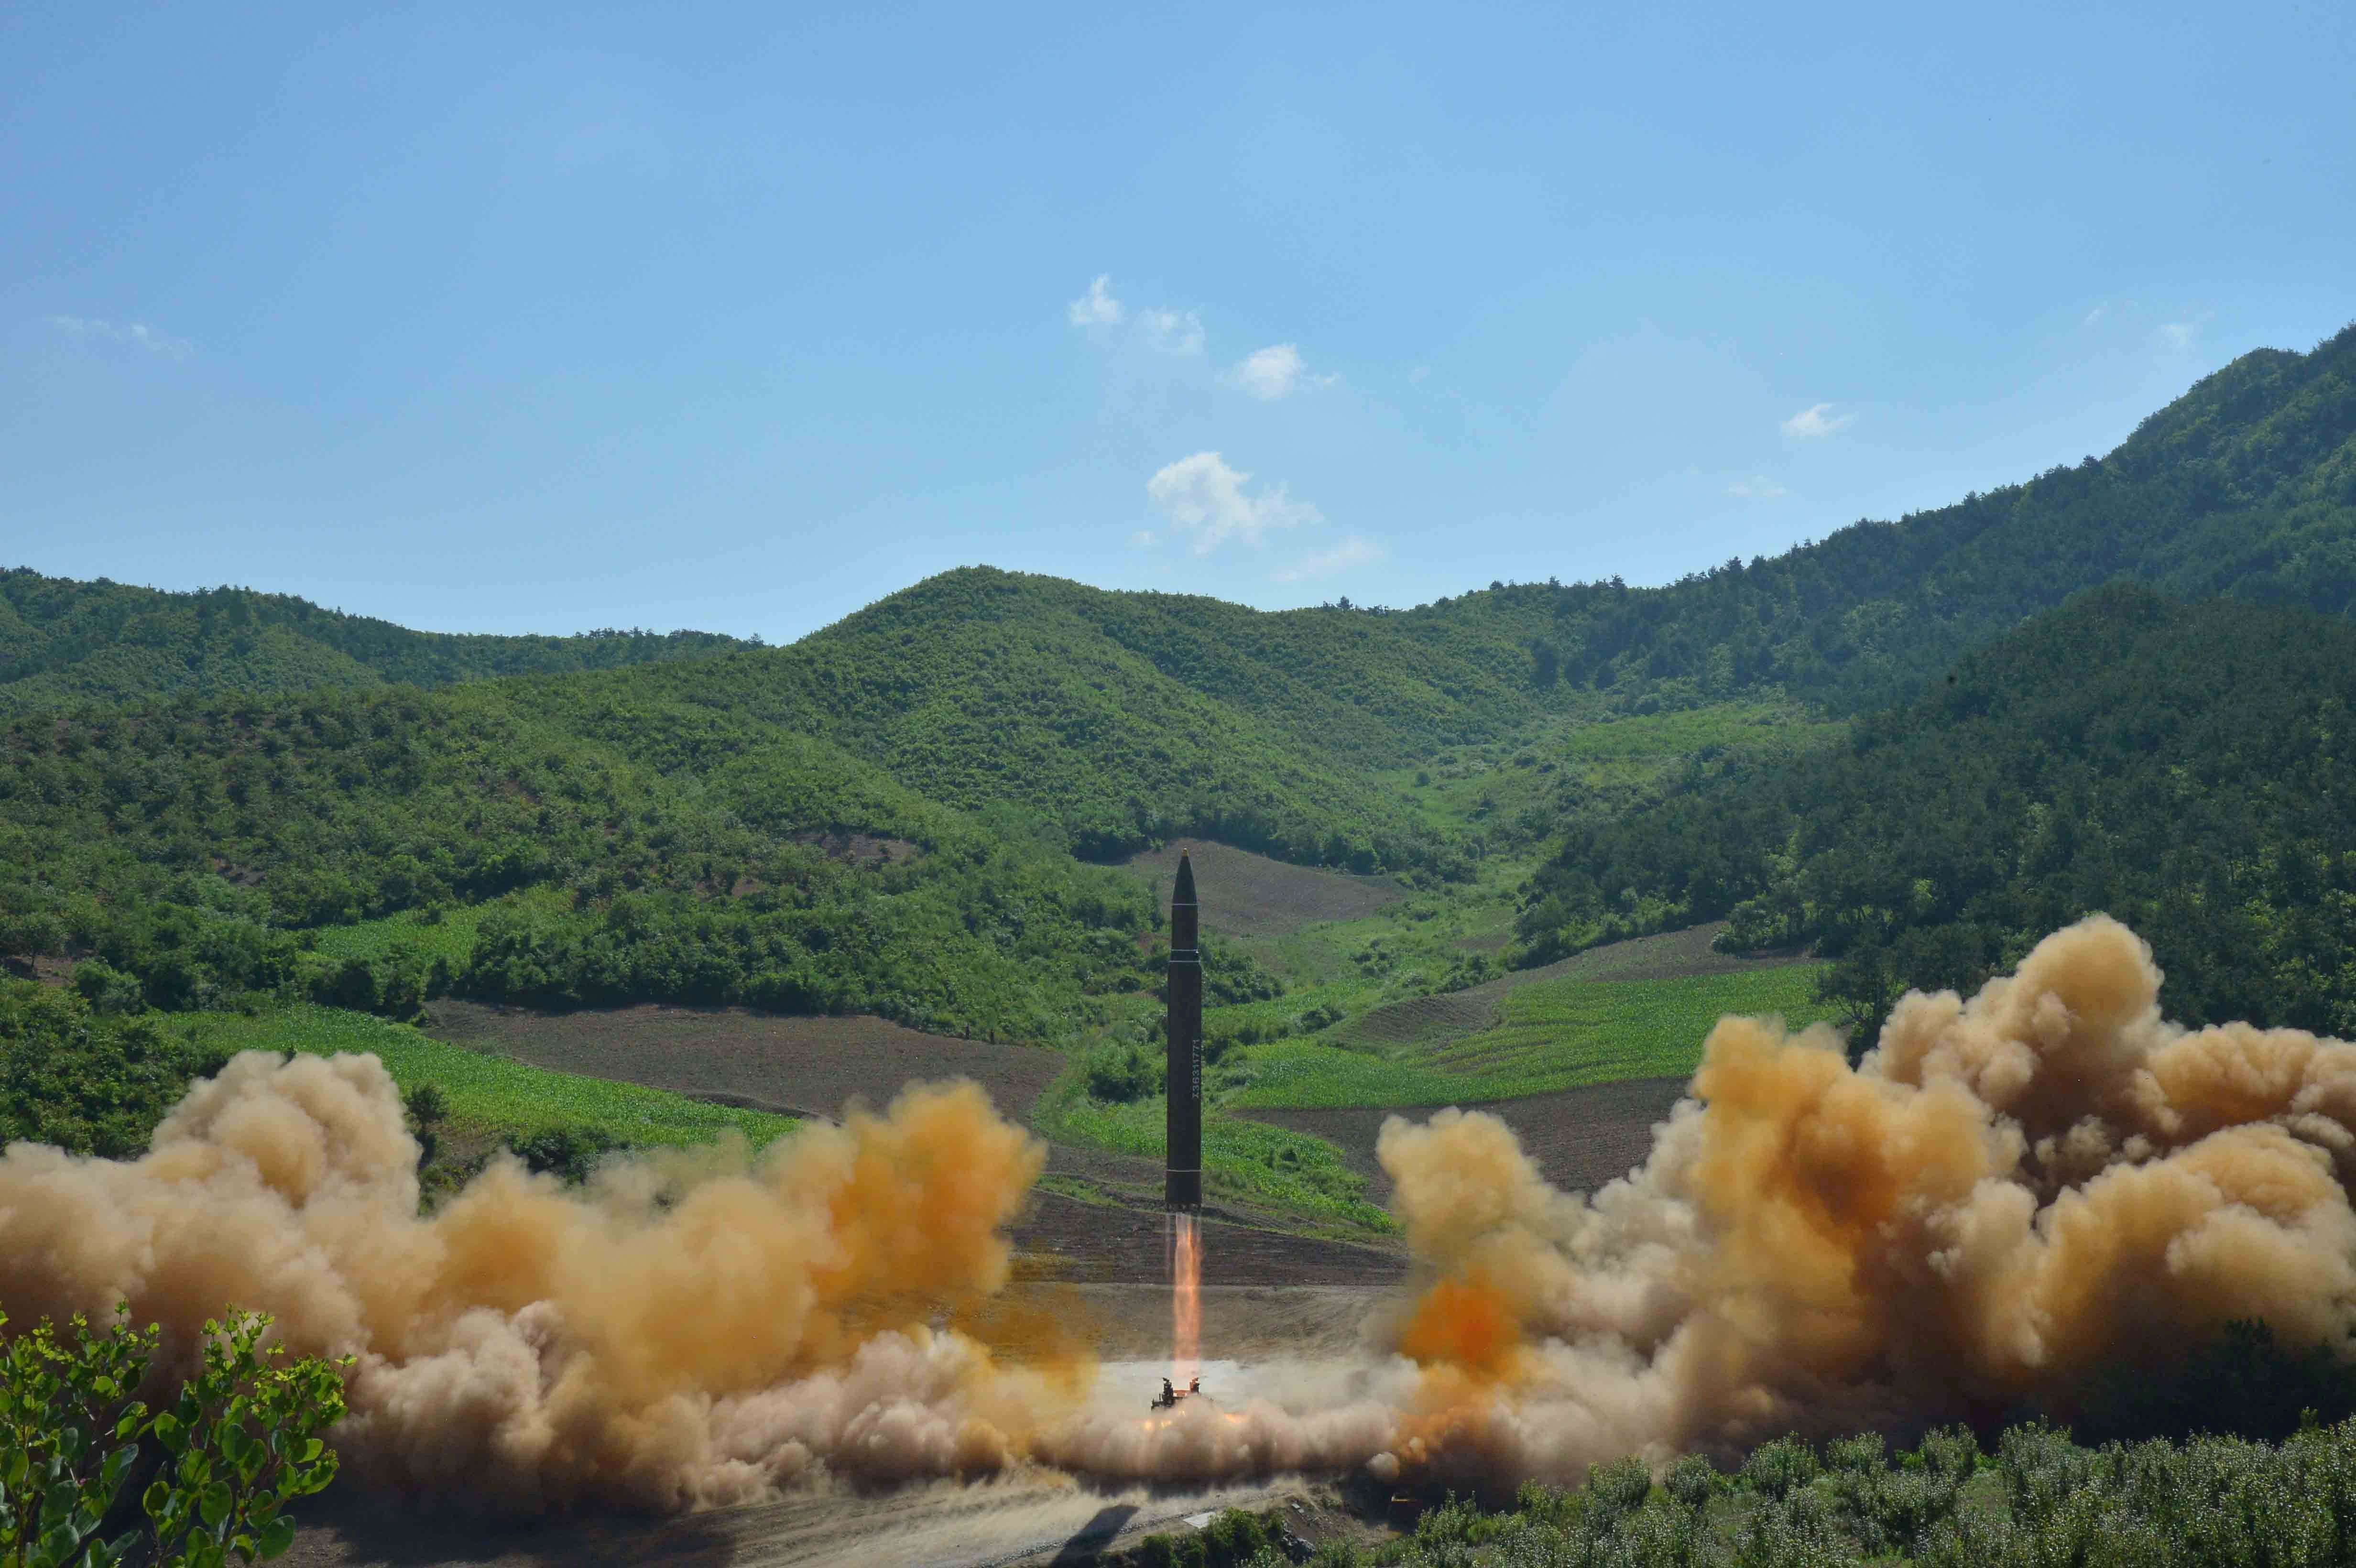 Anintercontinental ballistic missile during its test launch. Pyongyang, July 4.